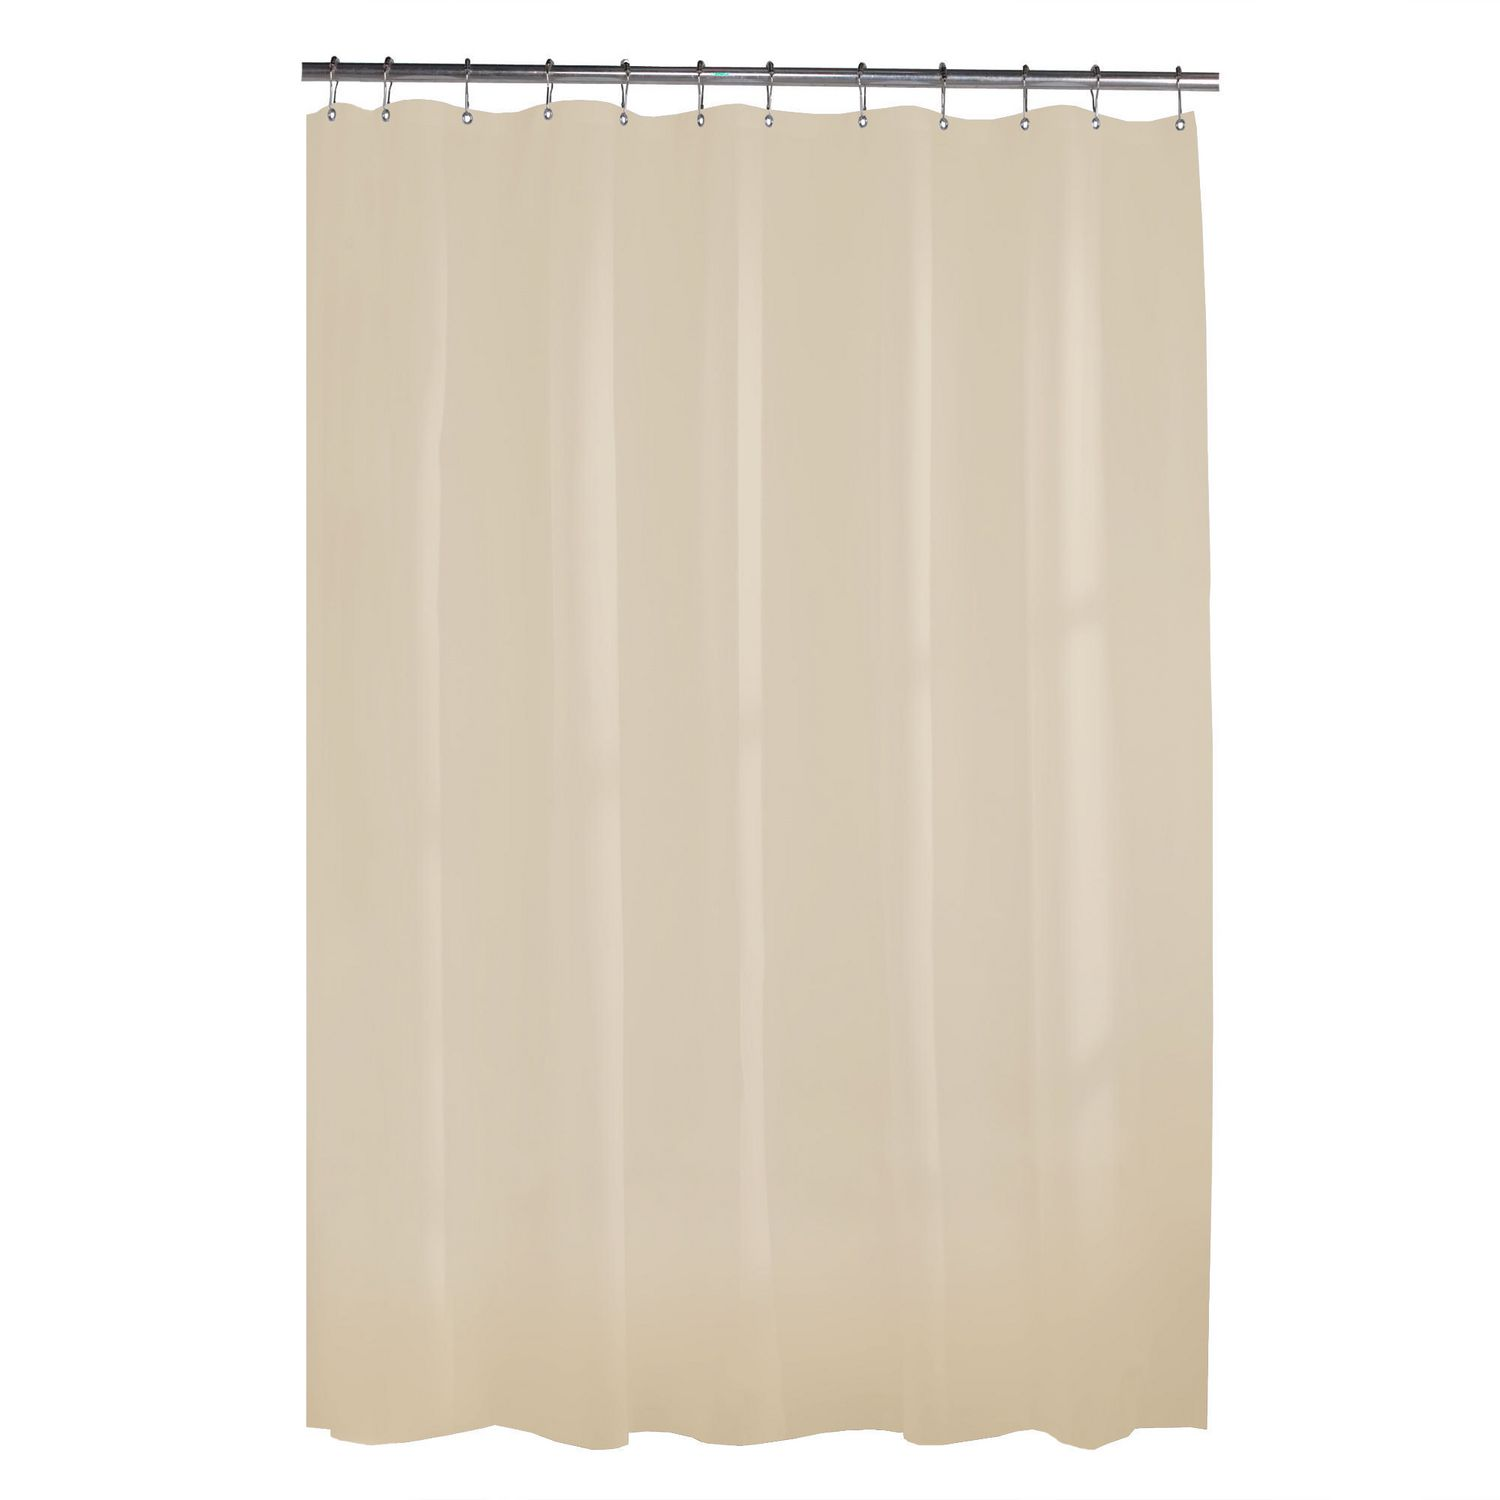 s gold curtain embroidered beige shower popular itm bath seraphina ebay inches